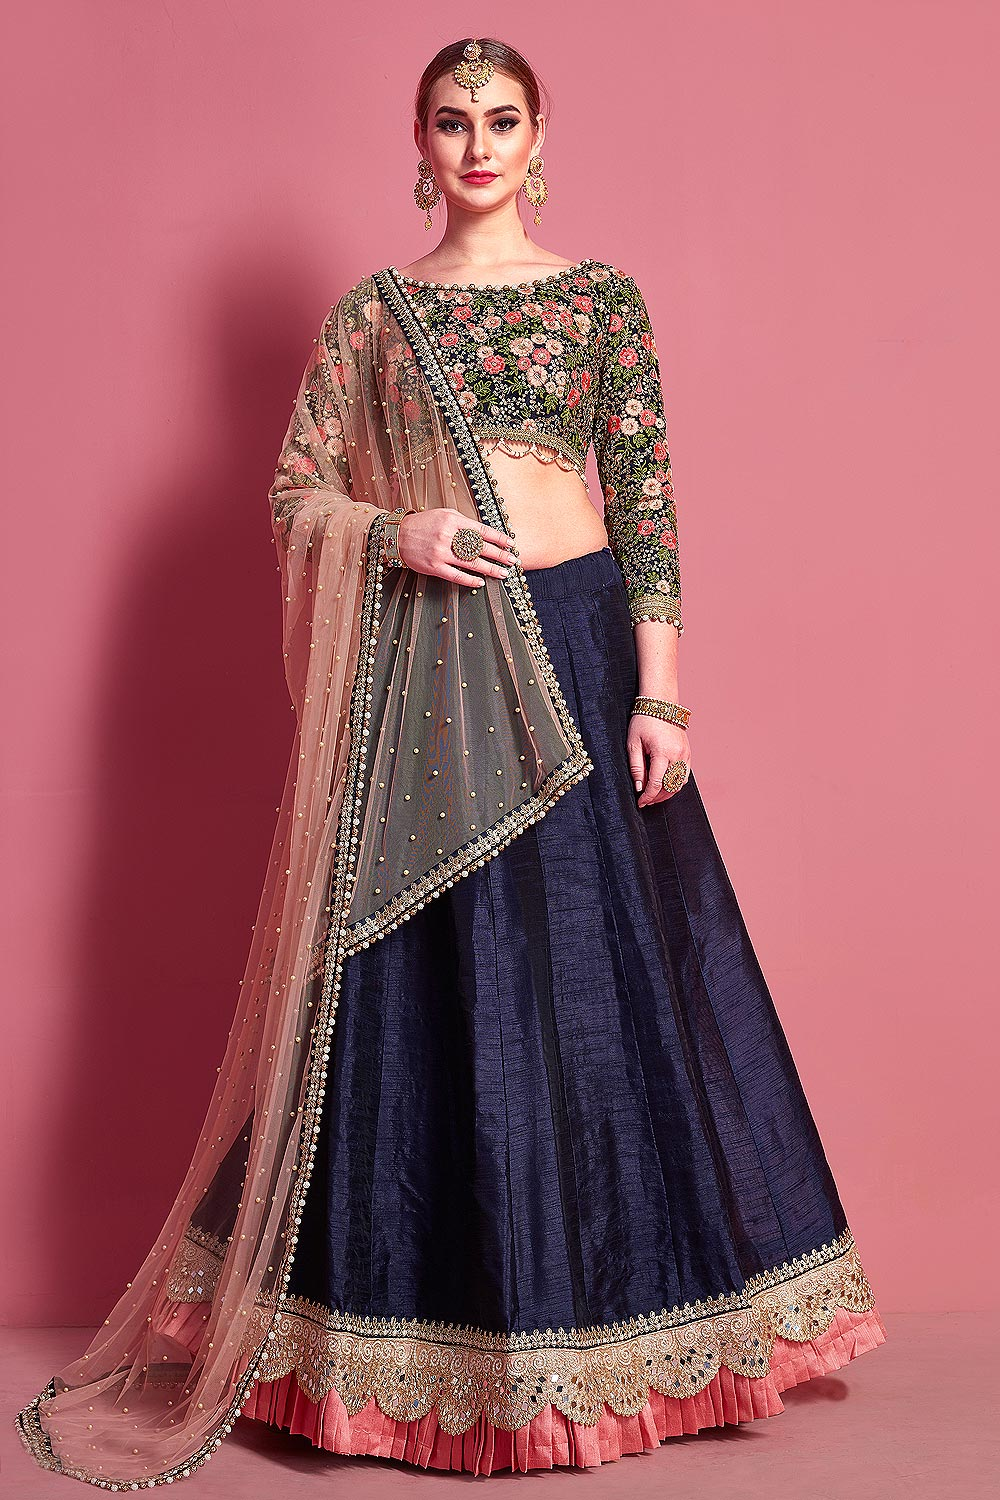 Resham Embroidered Silk Lehenga Choli with Pearl Detailing